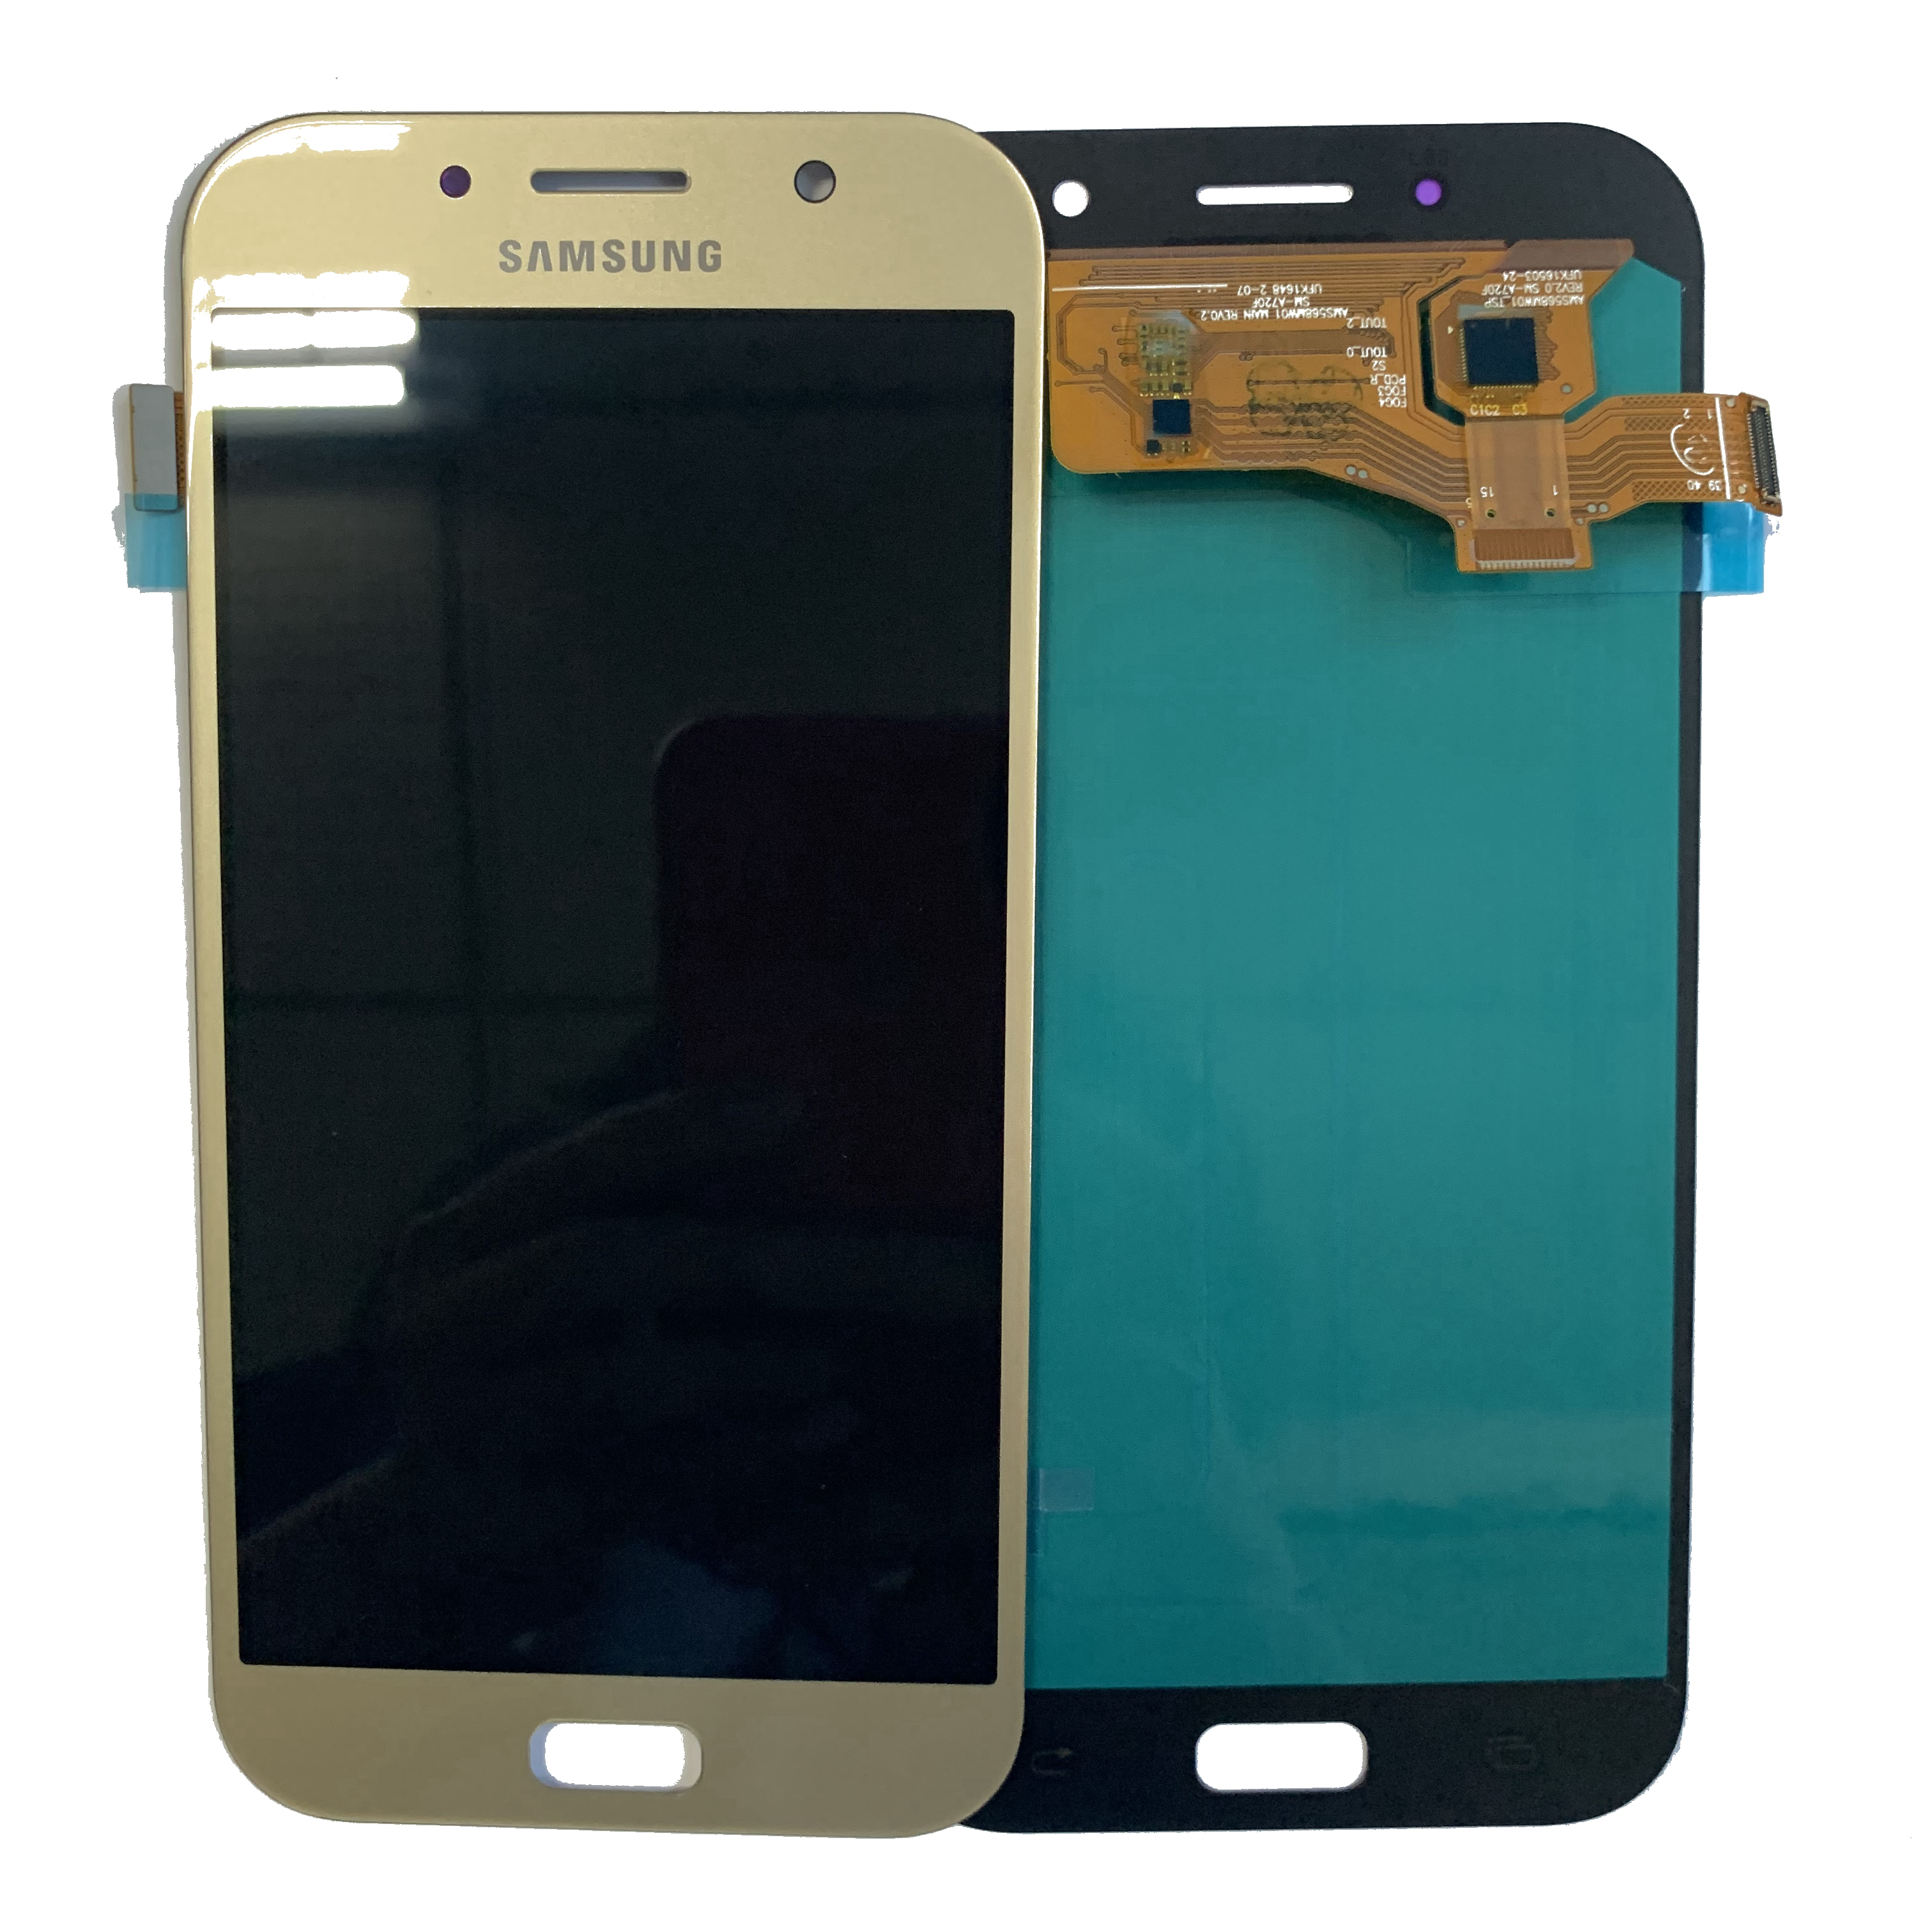 Super AMOLED <font><b>LCD</b></font> A7 2017 <font><b>A720</b></font> <font><b>LCD</b></font> Display For <font><b>Samsung</b></font> Galaxy A720F SM-A720F Touch Screen Digitizer Assembly Replacement Apart image